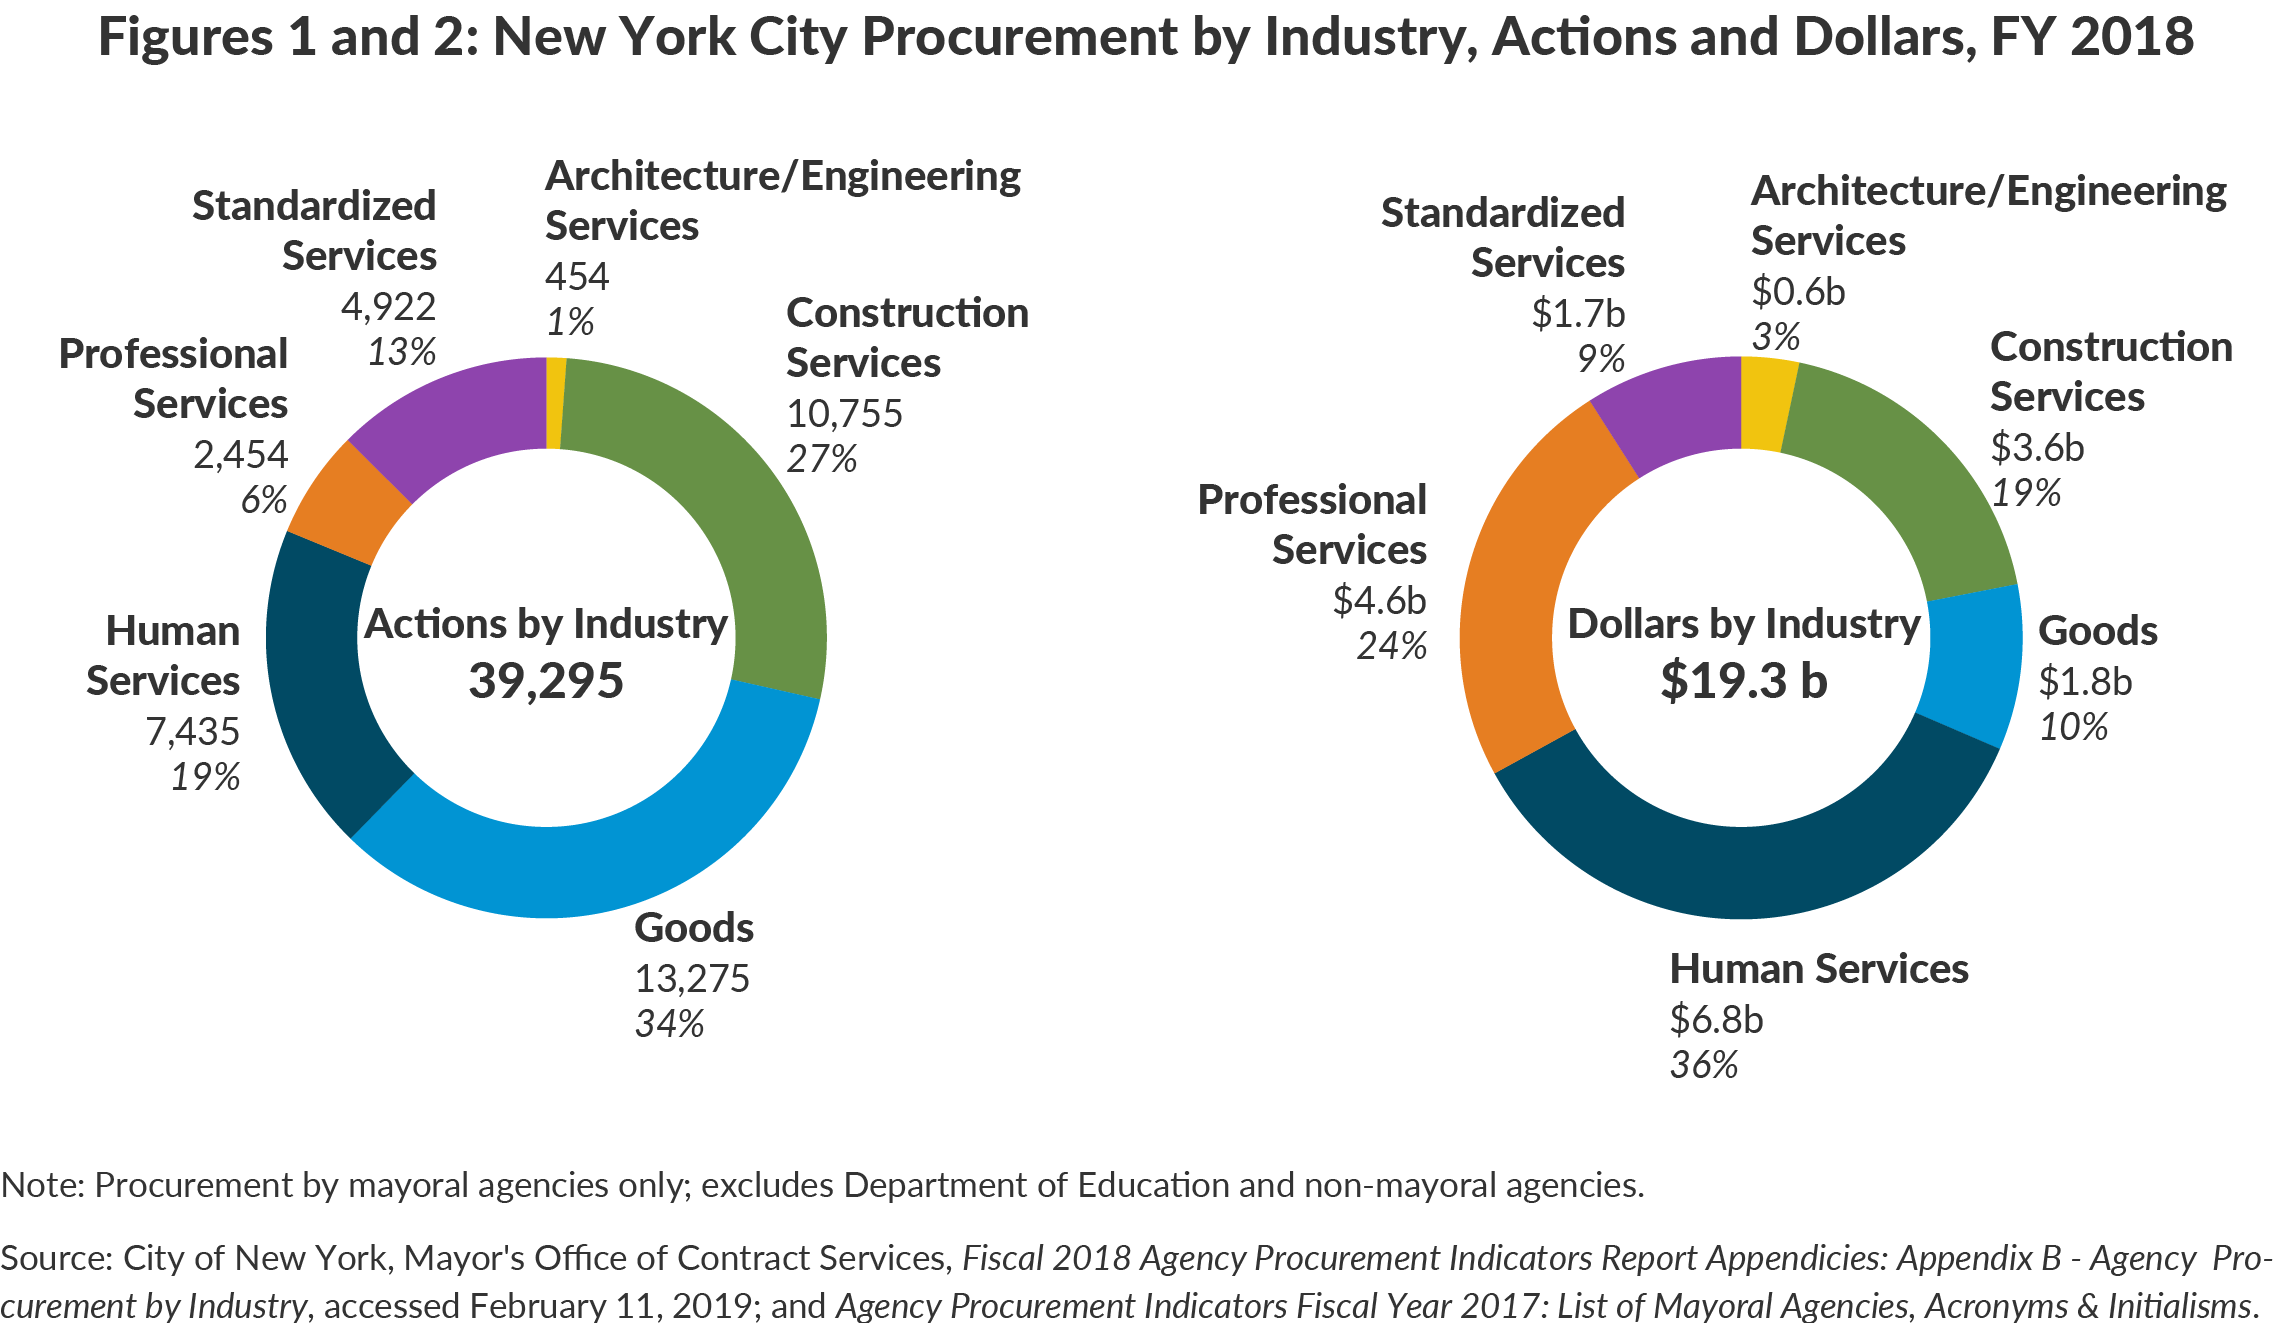 Figures 1 and 2: New York City Procurement by Industry, Actions and Dollars, FY 2018